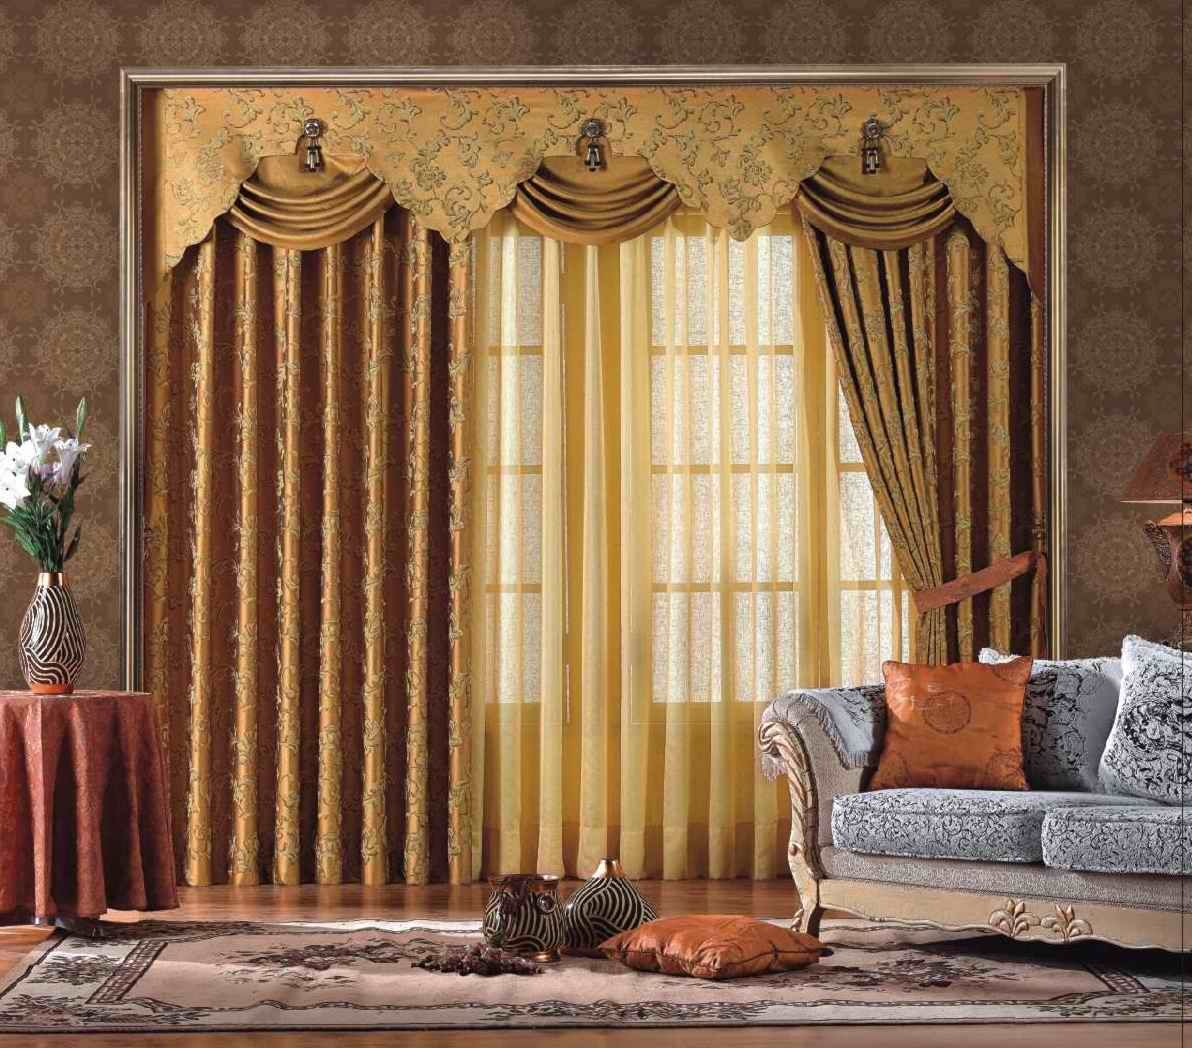 Living Room Curtain Design Adorable Architecture  Living Room Curtains With Valance Sutntljr Gorgeous Design Decoration